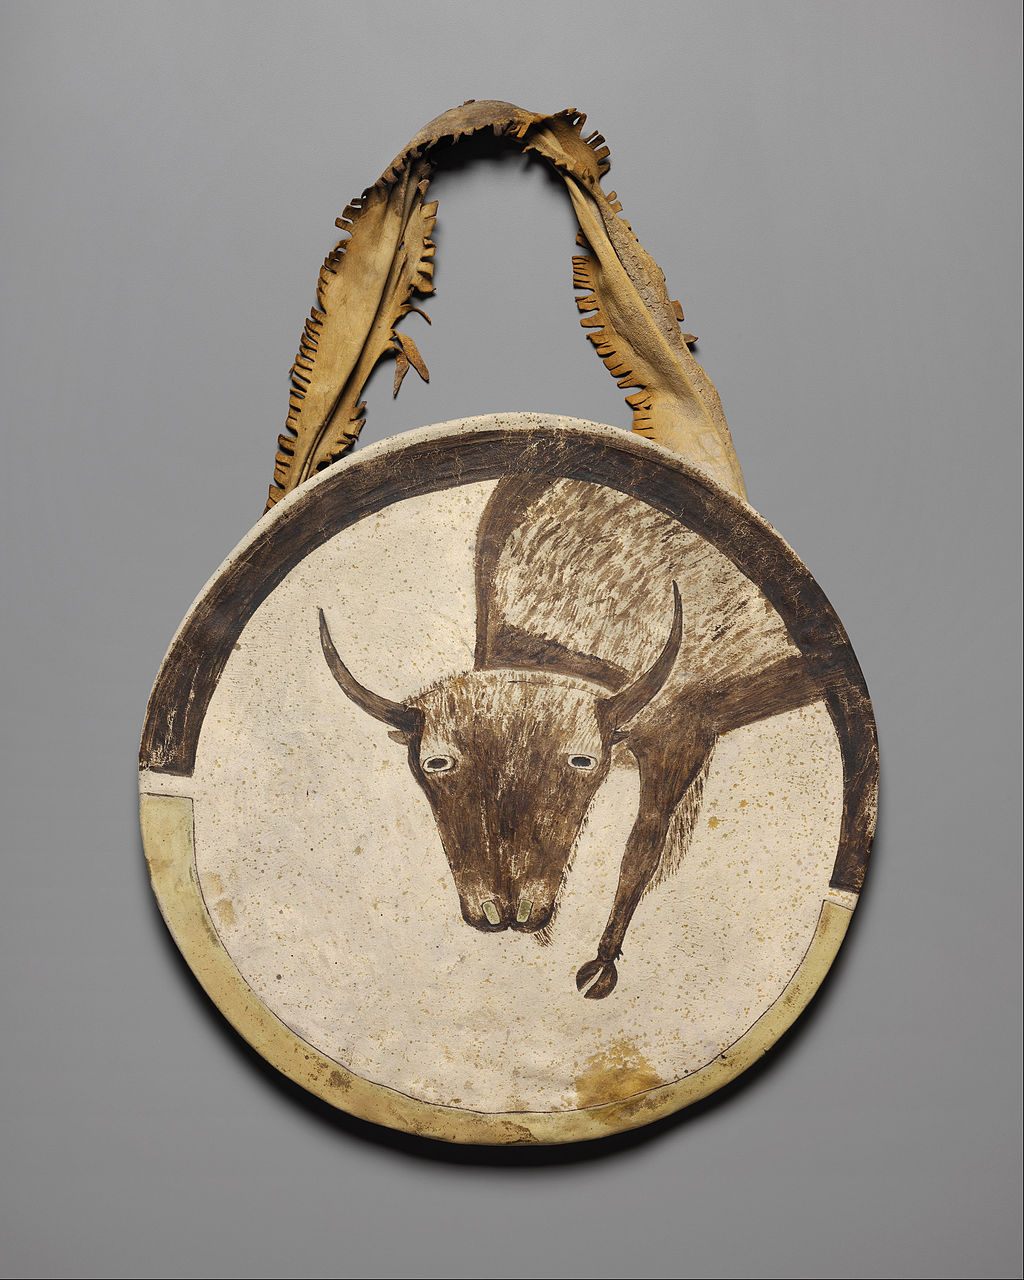 A file photo of a rawhide shield, ca. 1850, at the Nelson-Atkins Museum of Art. (Public Domain)